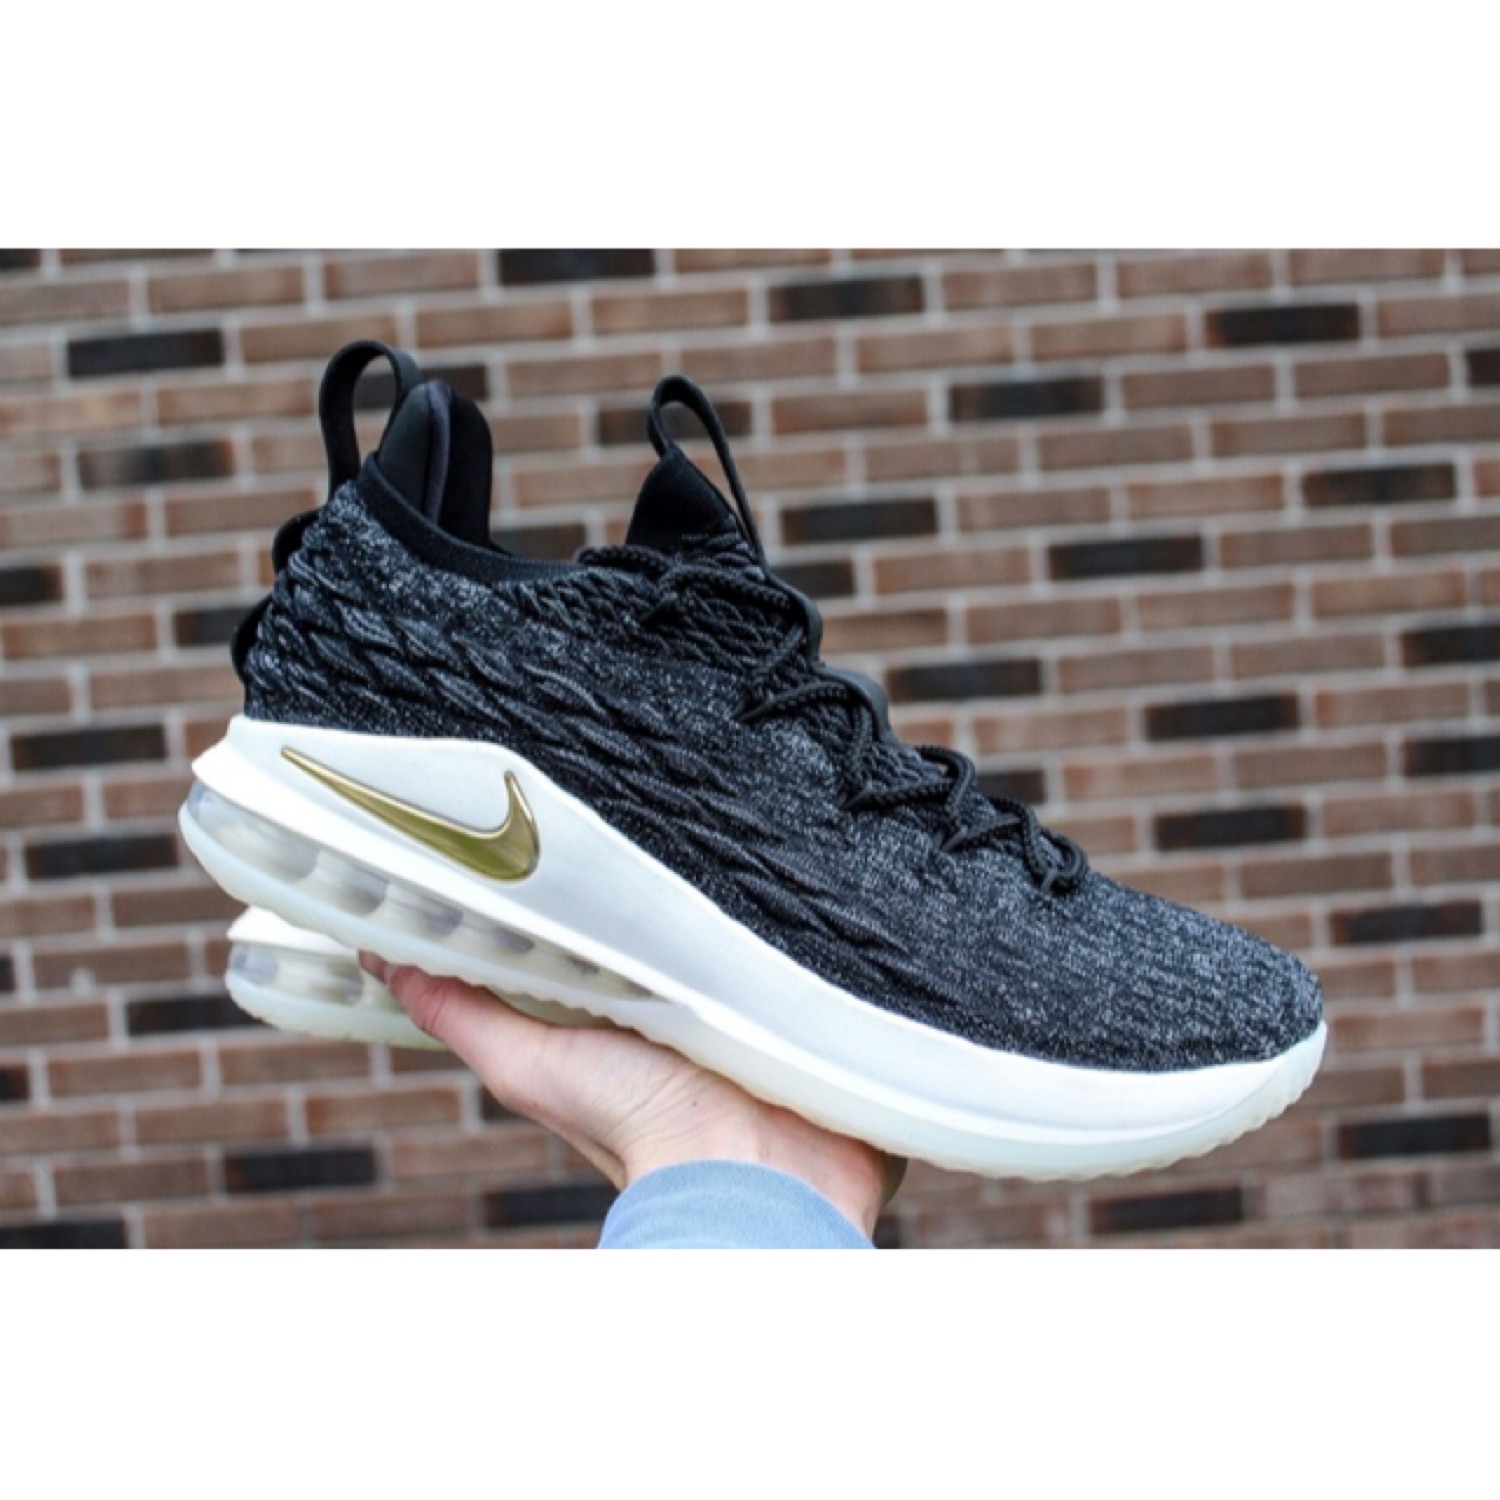 timeless design 48cac a6a13 Nike Lebron 15 Low Black Metallic Gold